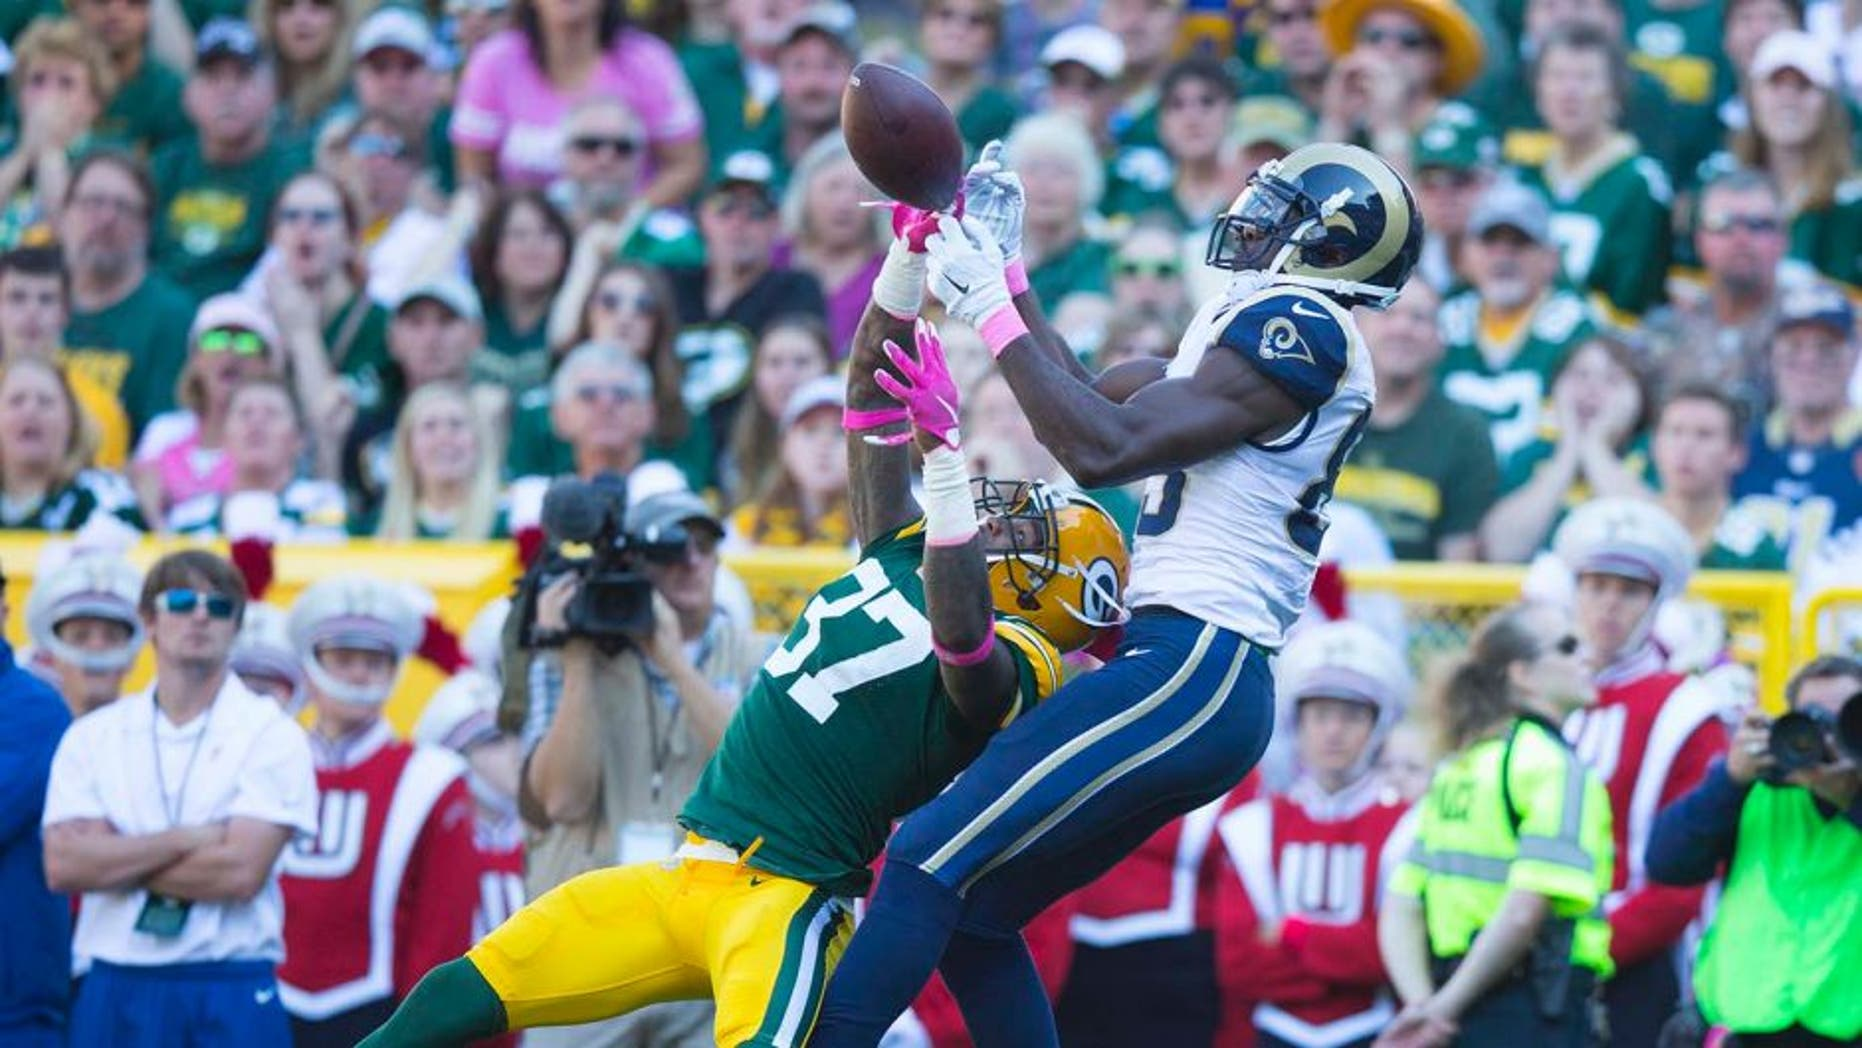 Oct 11, 2015; Green Bay, WI, USA; Green Bay Packers cornerback Sam Shields (37) breaks up the pass intended for St. Louis Rams wide receiver Brian Quick (83) during the second quarter at Lambeau Field. Mandatory Credit: Jeff Hanisch-USA TODAY Sports